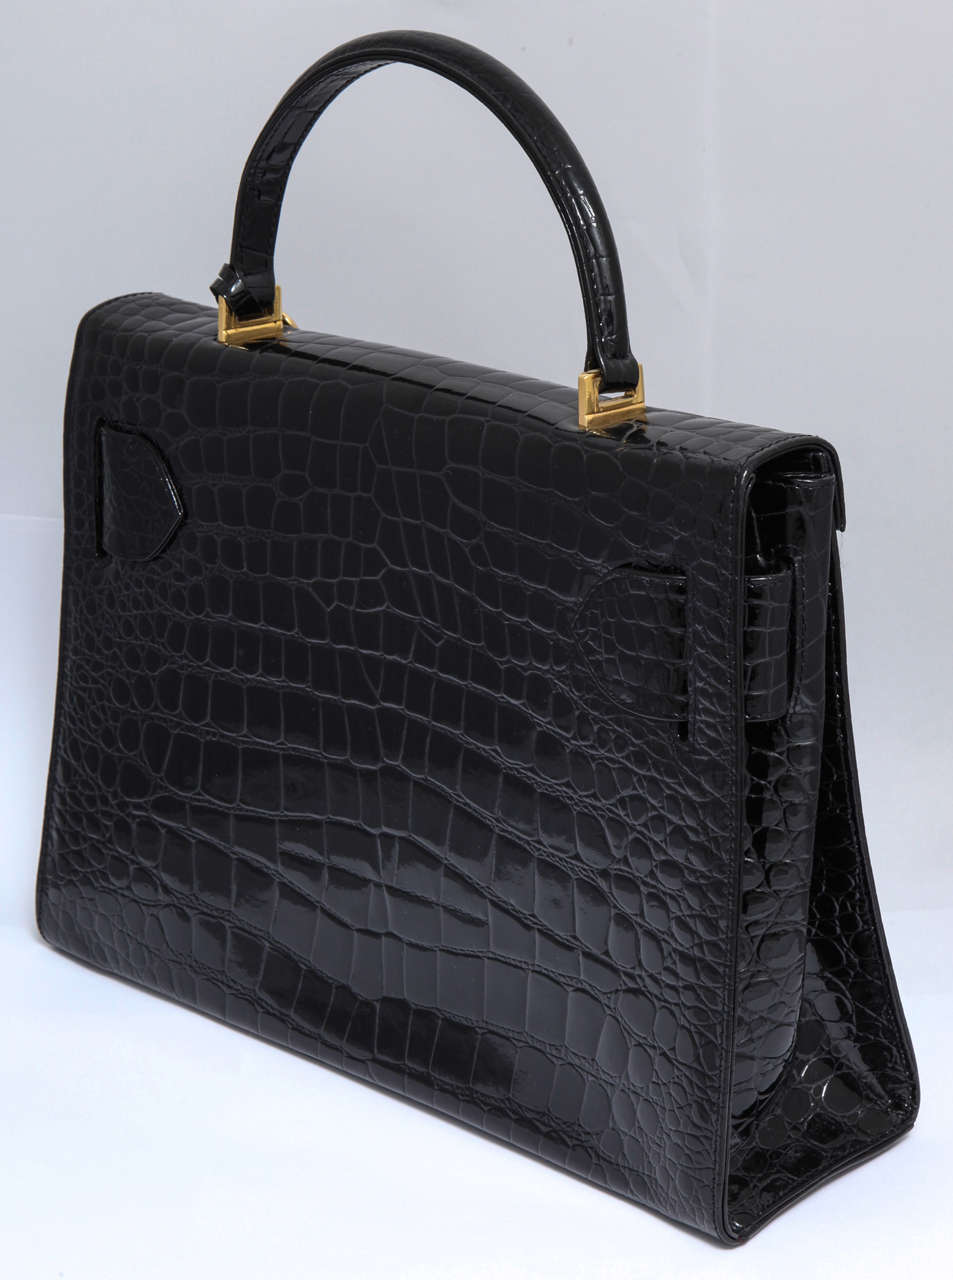 Gianni Versace Croc Embossed Couture Bag With Medusas 5